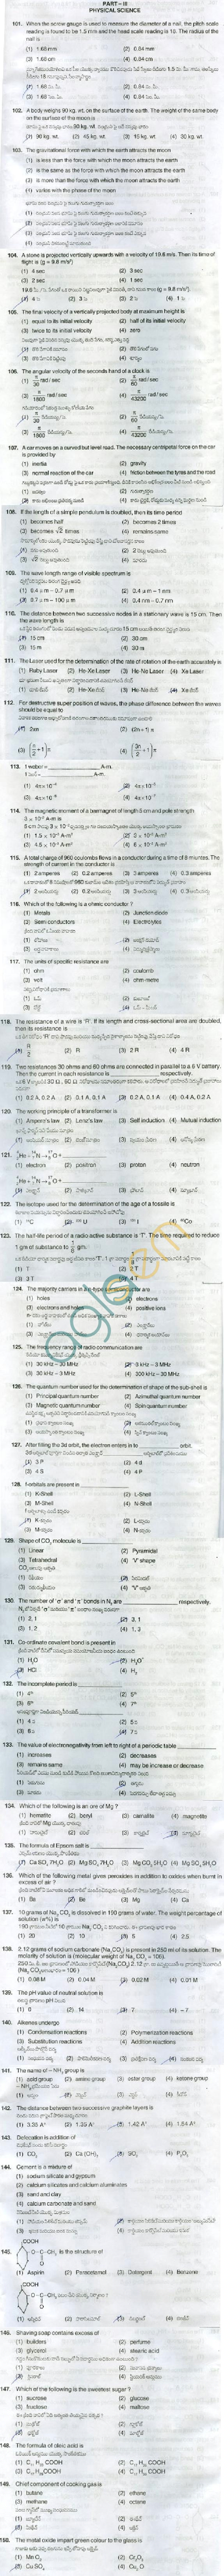 APRJC CET 2013 BPC/CGDM Question Paper